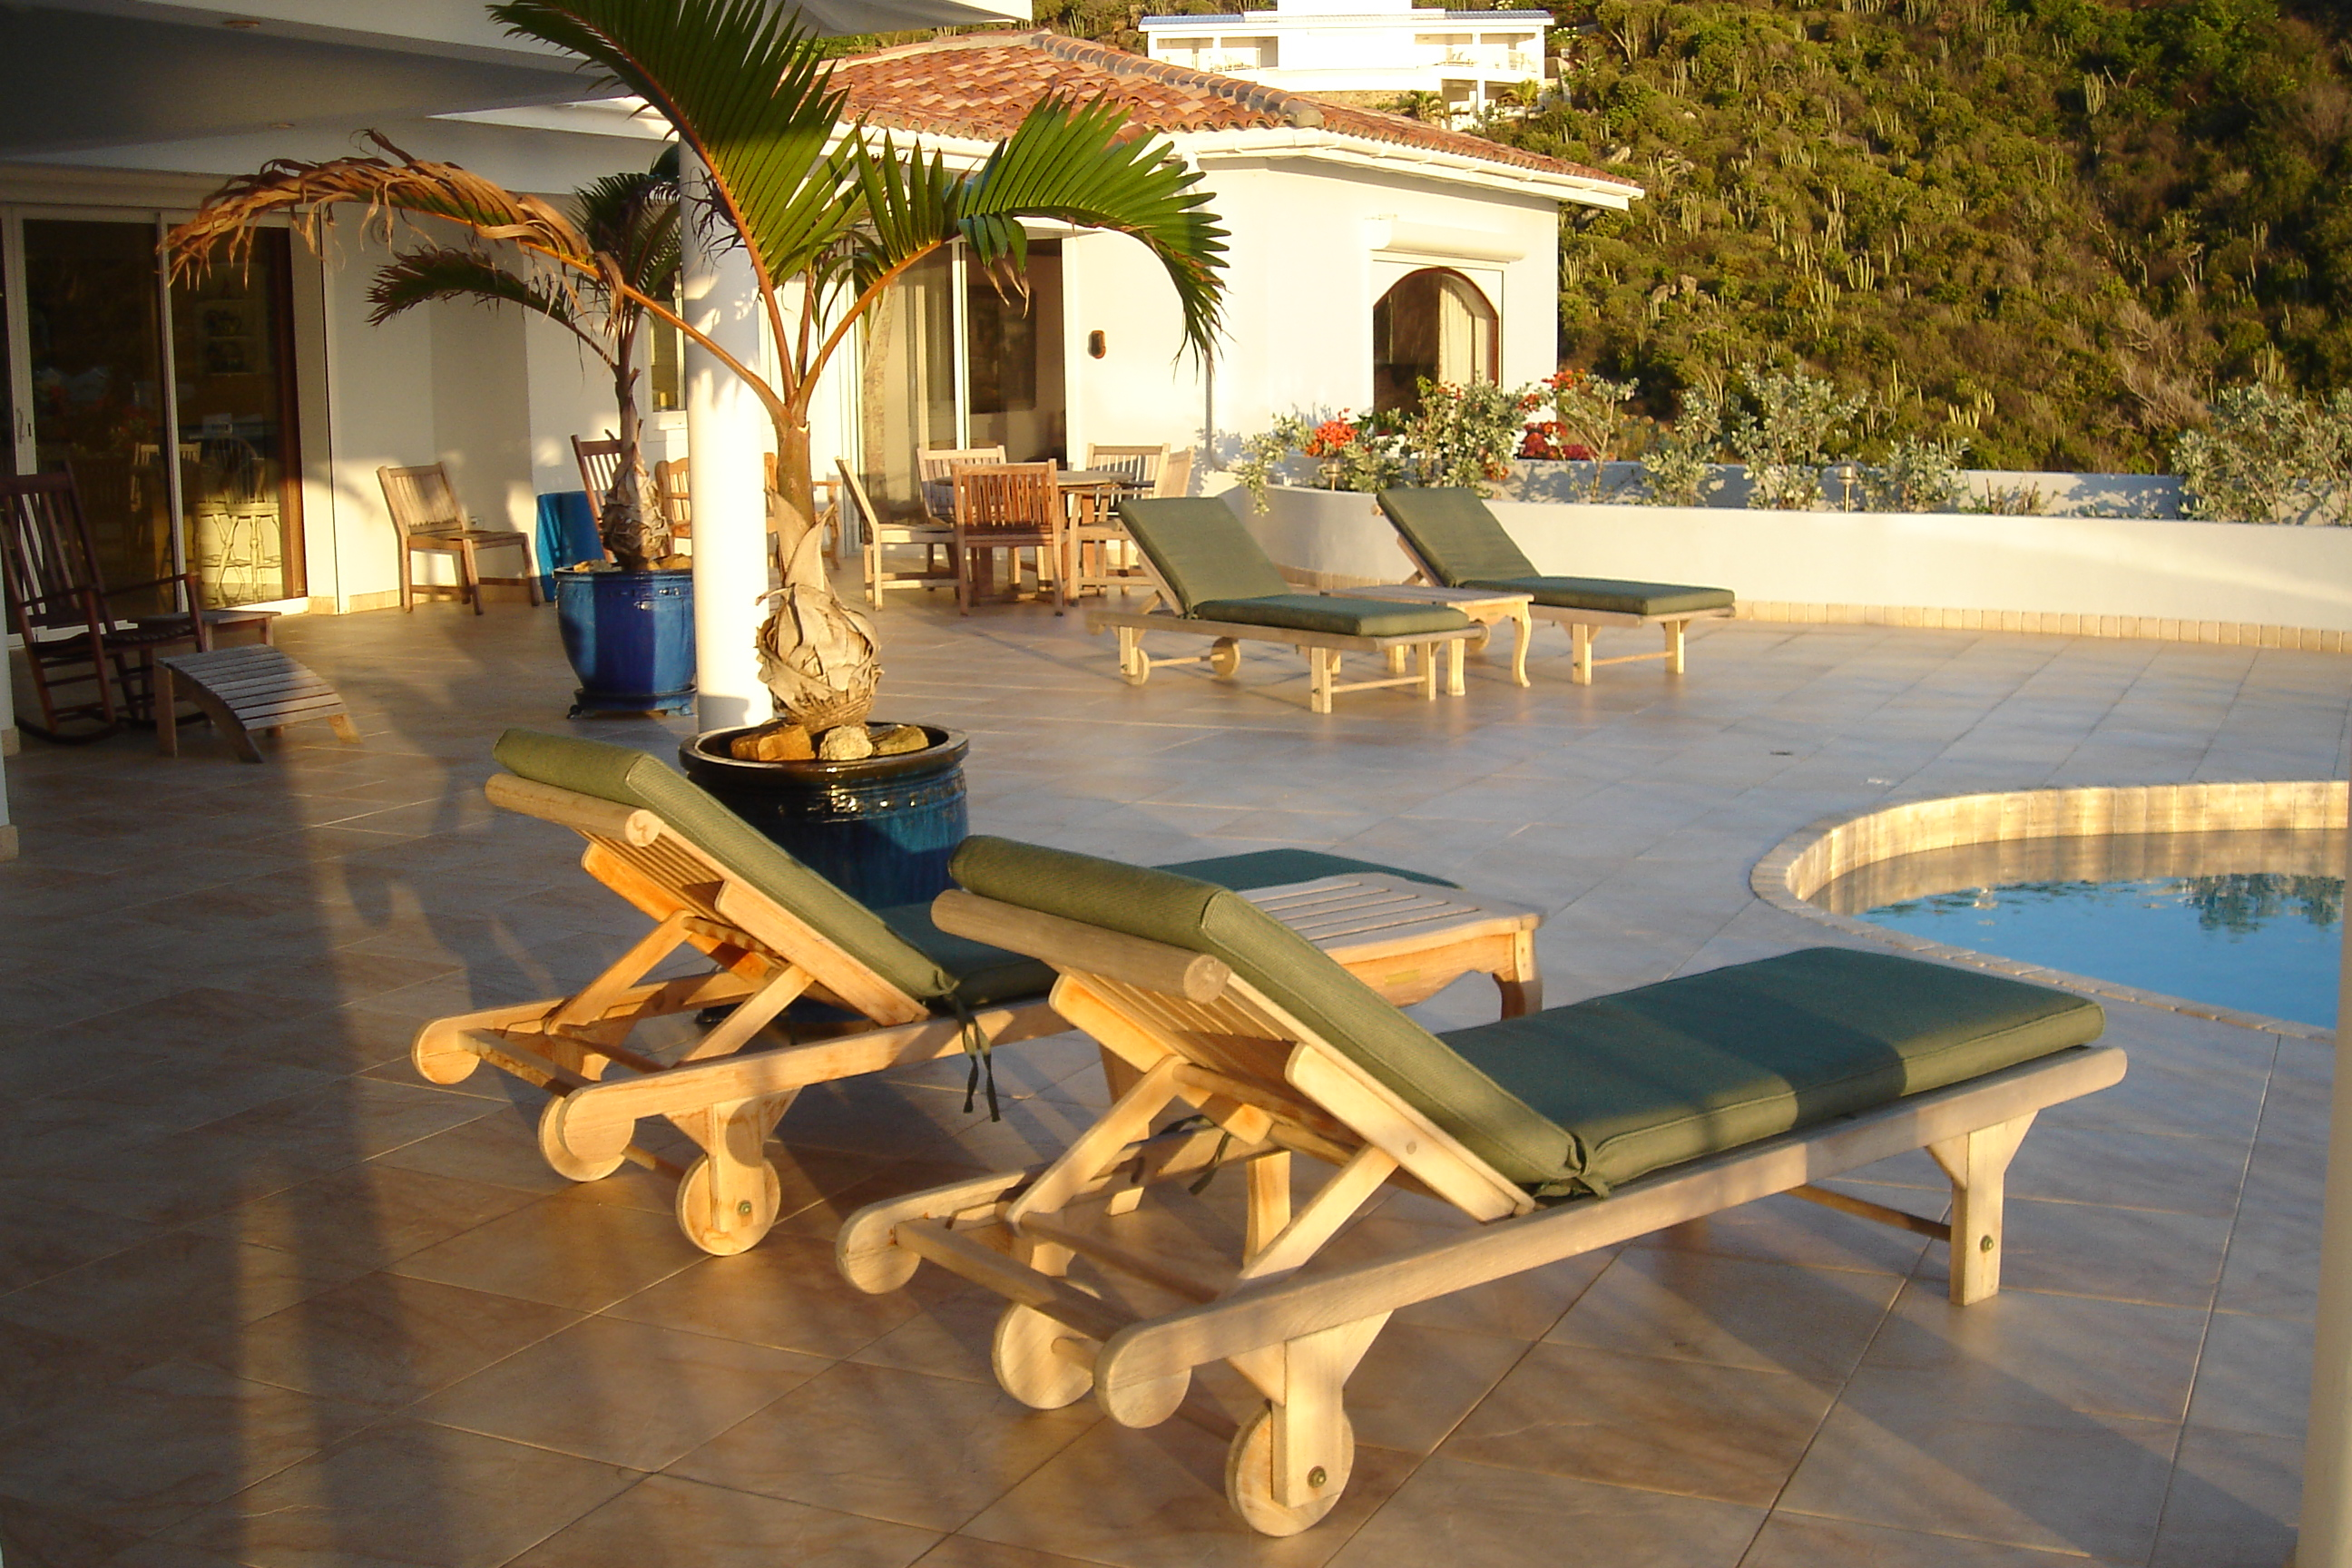 SM330 Chaise Lounges by Pool